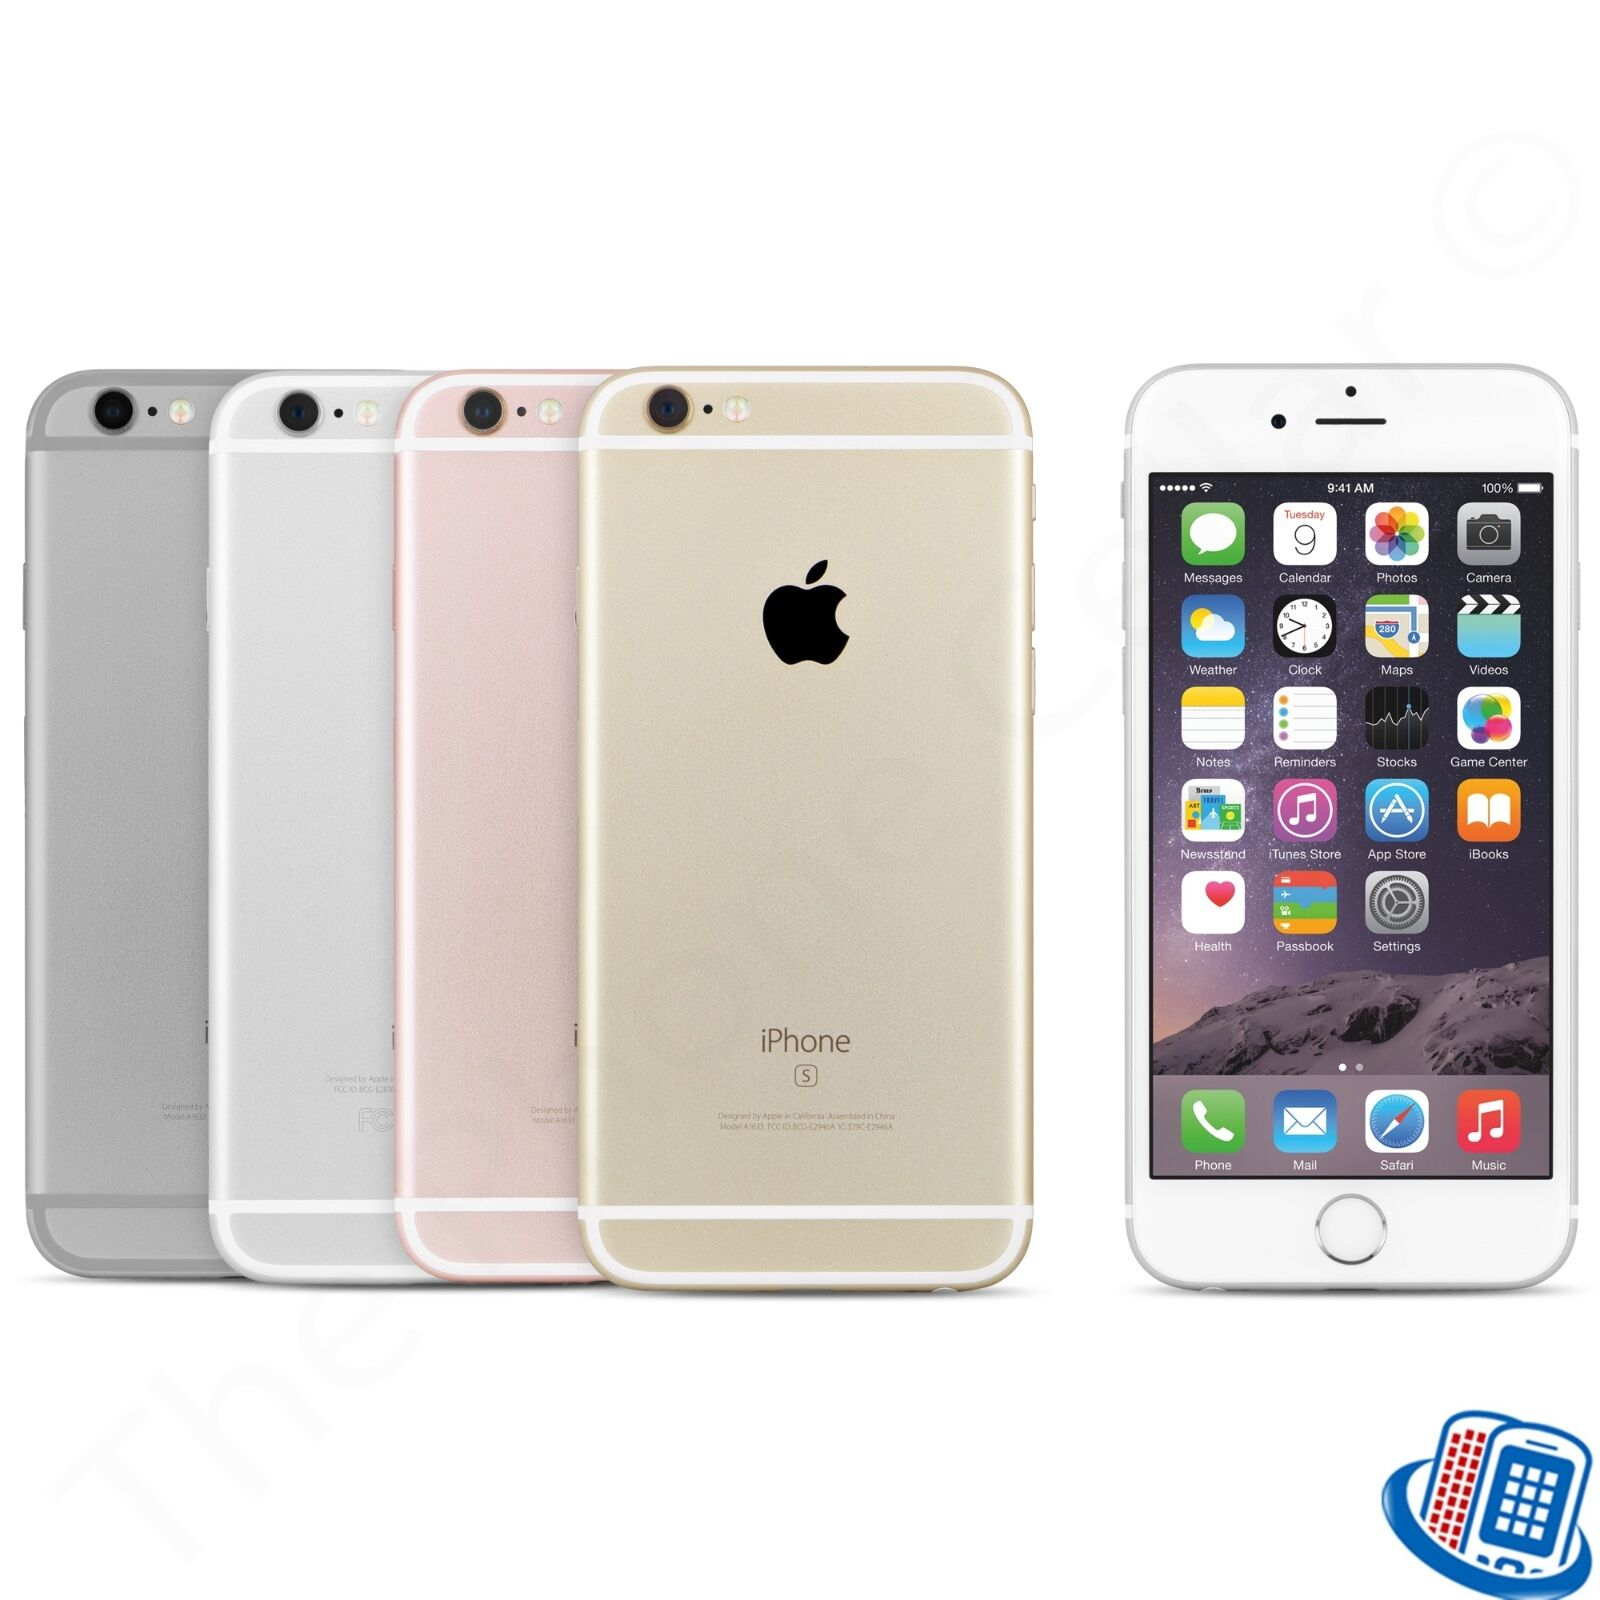 iphone 5 s 64gb